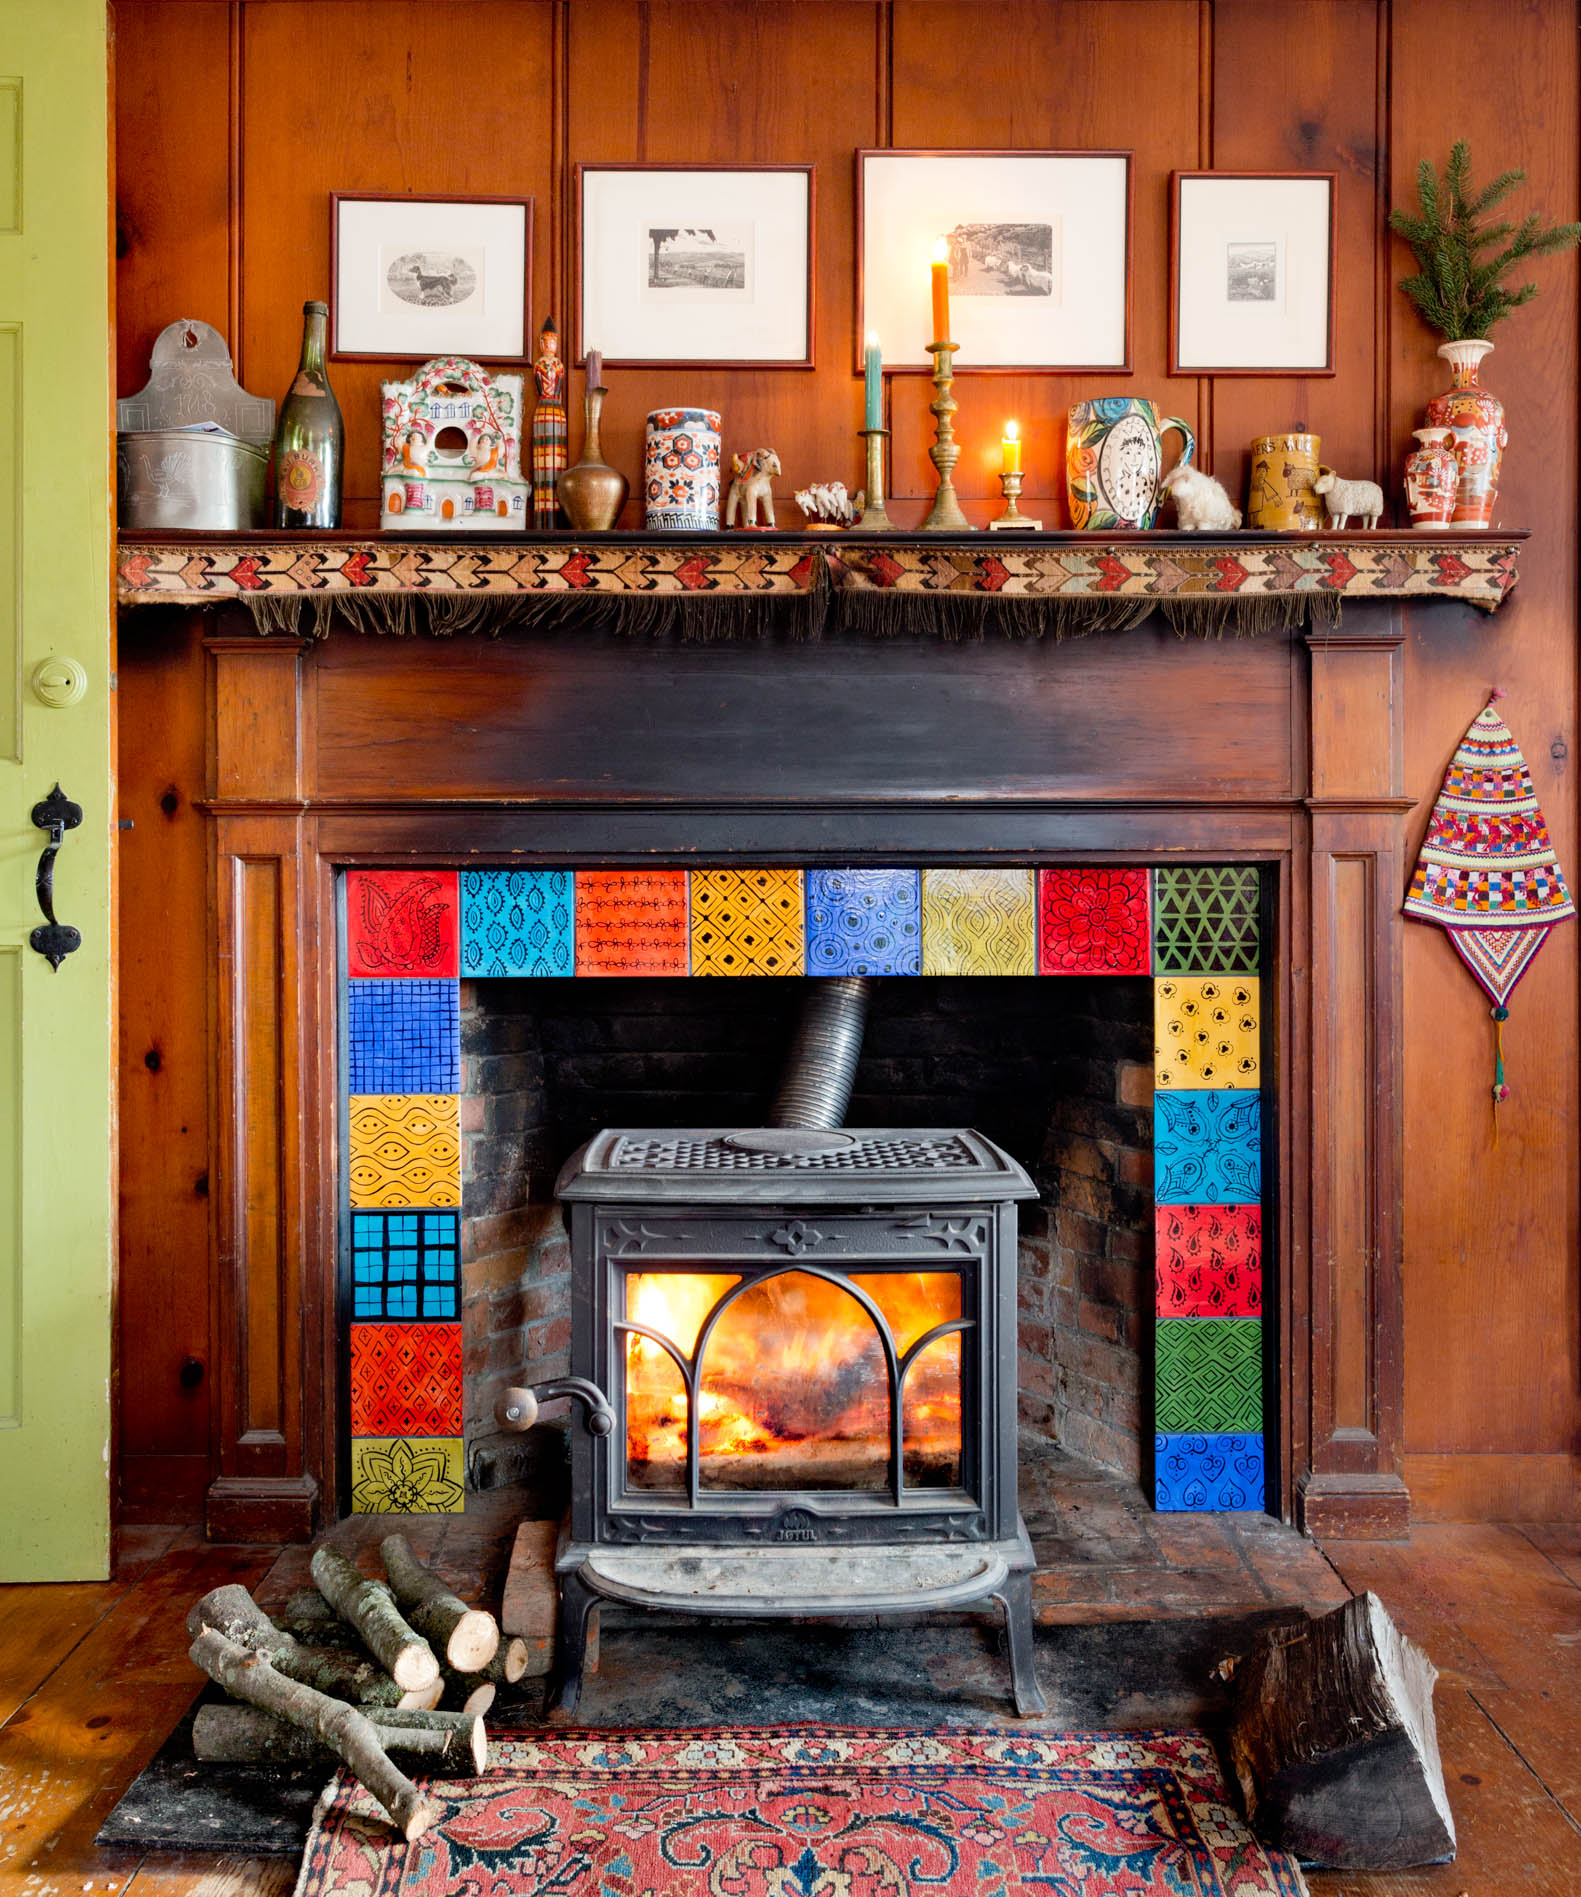 colorful-wood-stove-fireplace-country.jpg